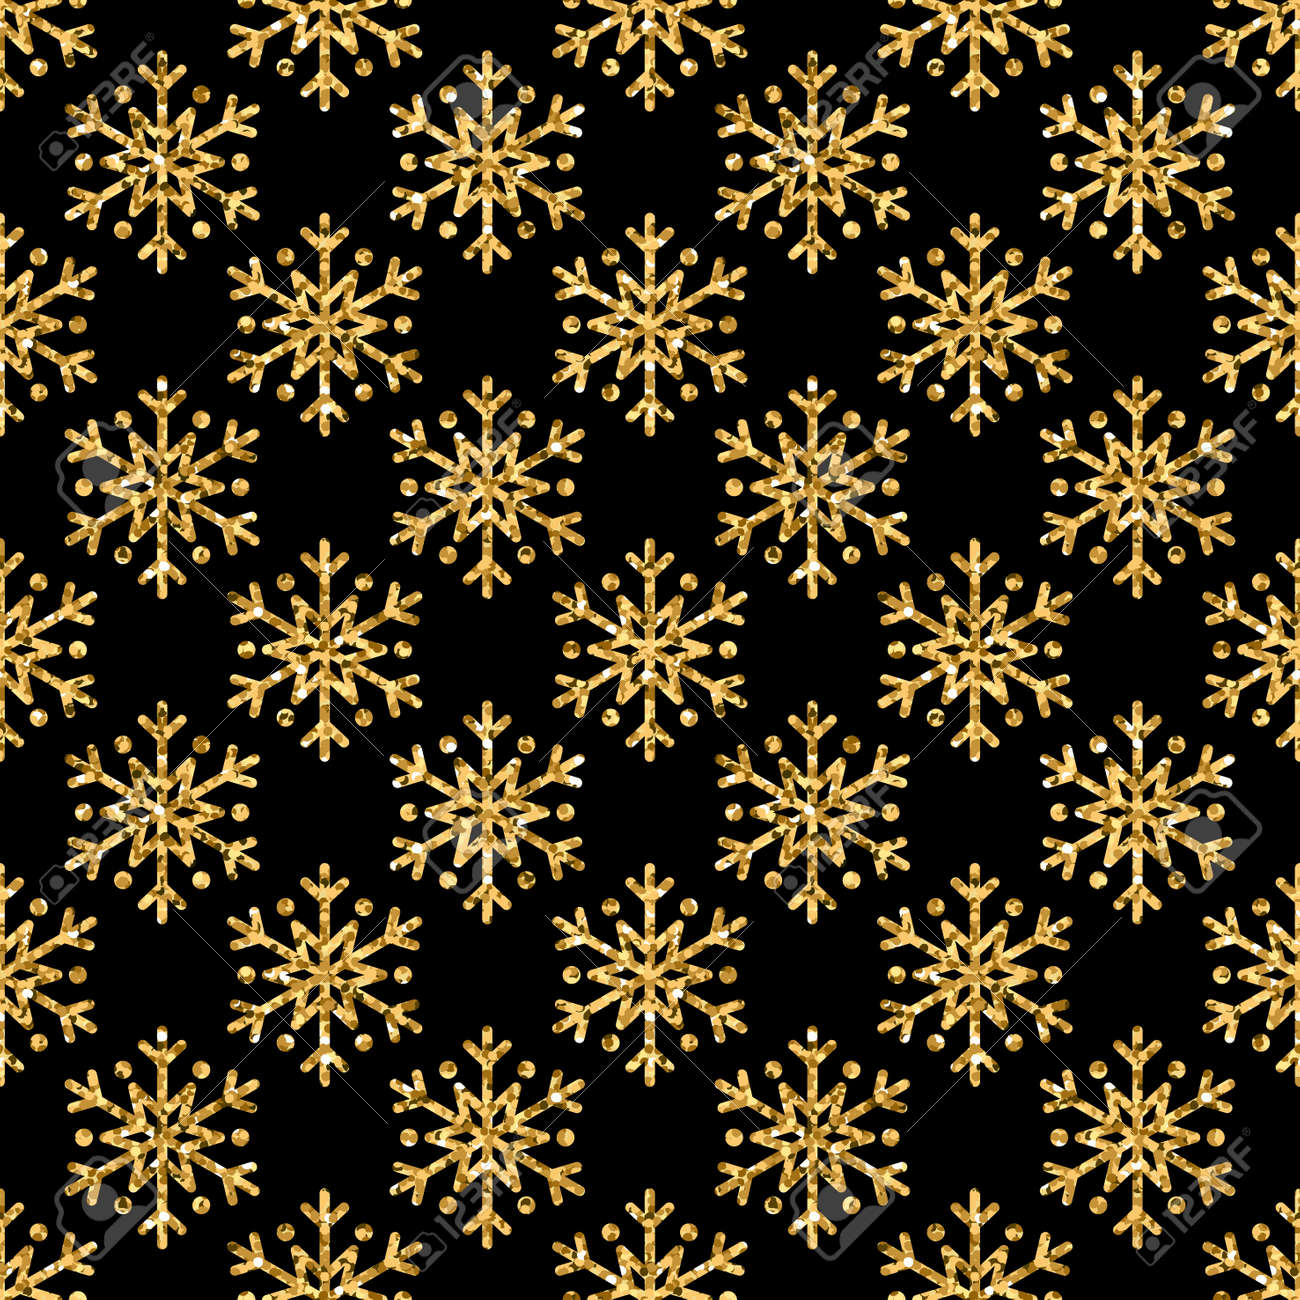 Christmas Snowflake Seamless Pattern Gold Snow Black Background Golden Abstract Shine Wallpaper Wrapping